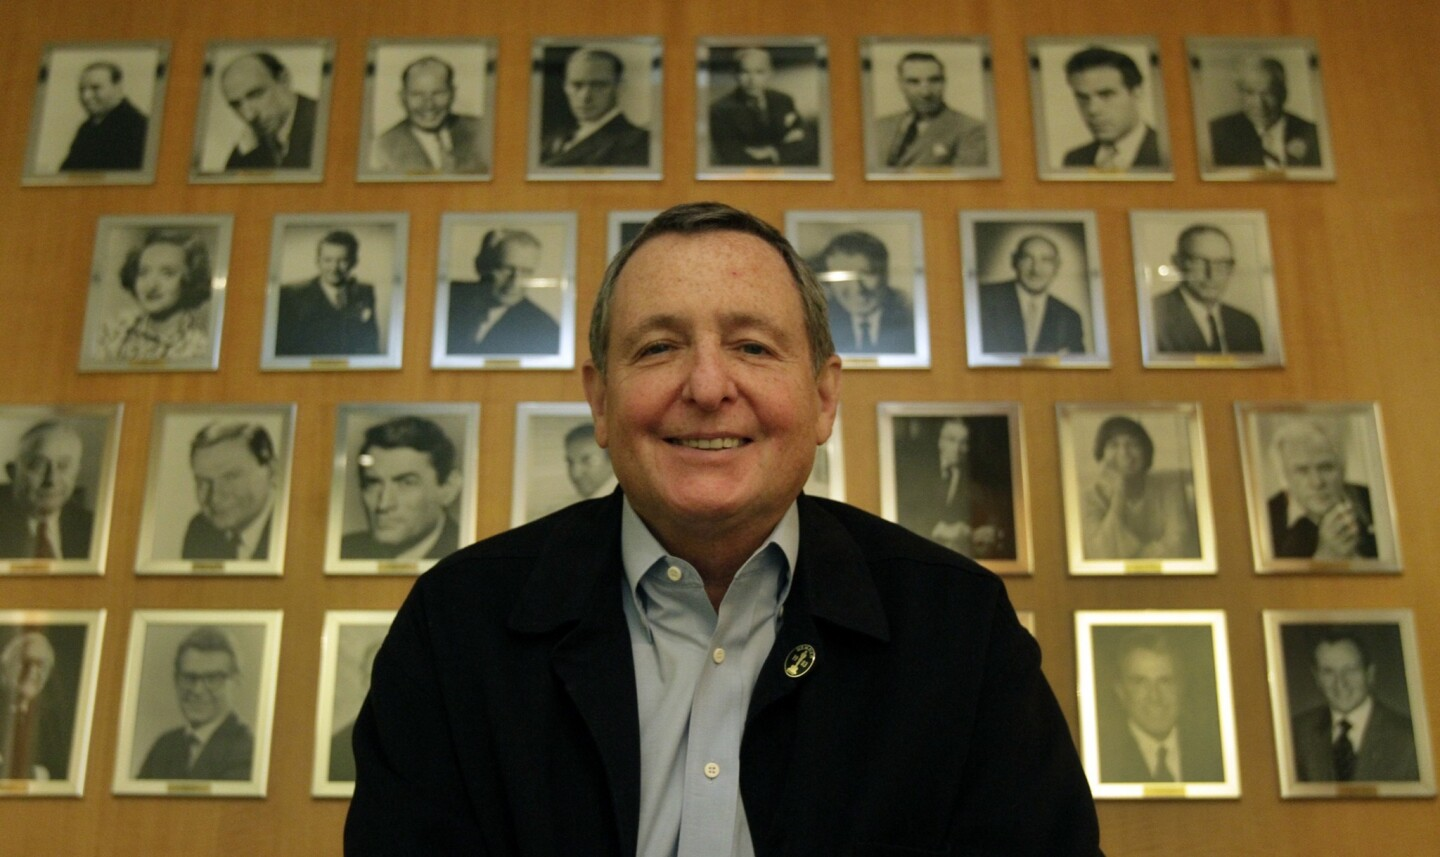 """Tom Sherak, who served in key posts at 20th Century Fox and was head of the Academy of Motion Picture Arts and Sciences from 2009 to 2012, has died at 68. Over his career, Sherak, who died after a long battle with prostate cancer, held high-ranking marketing and production jobs at Fox and eventually rose to chairman of the domestic film group. He was instrumental in movies such as """"Die Hard,"""" """"The Fly,"""" """"Wall Street"""" and """"Independence Day,"""" and at the time of his death had served as Los Angeles' film czar. In the above photo, Tom Sherak stands before a gallery of past presidents of the academy at its Beverly Hills headquarters on July 10, 2012, when he was the outgoing president of the academy."""